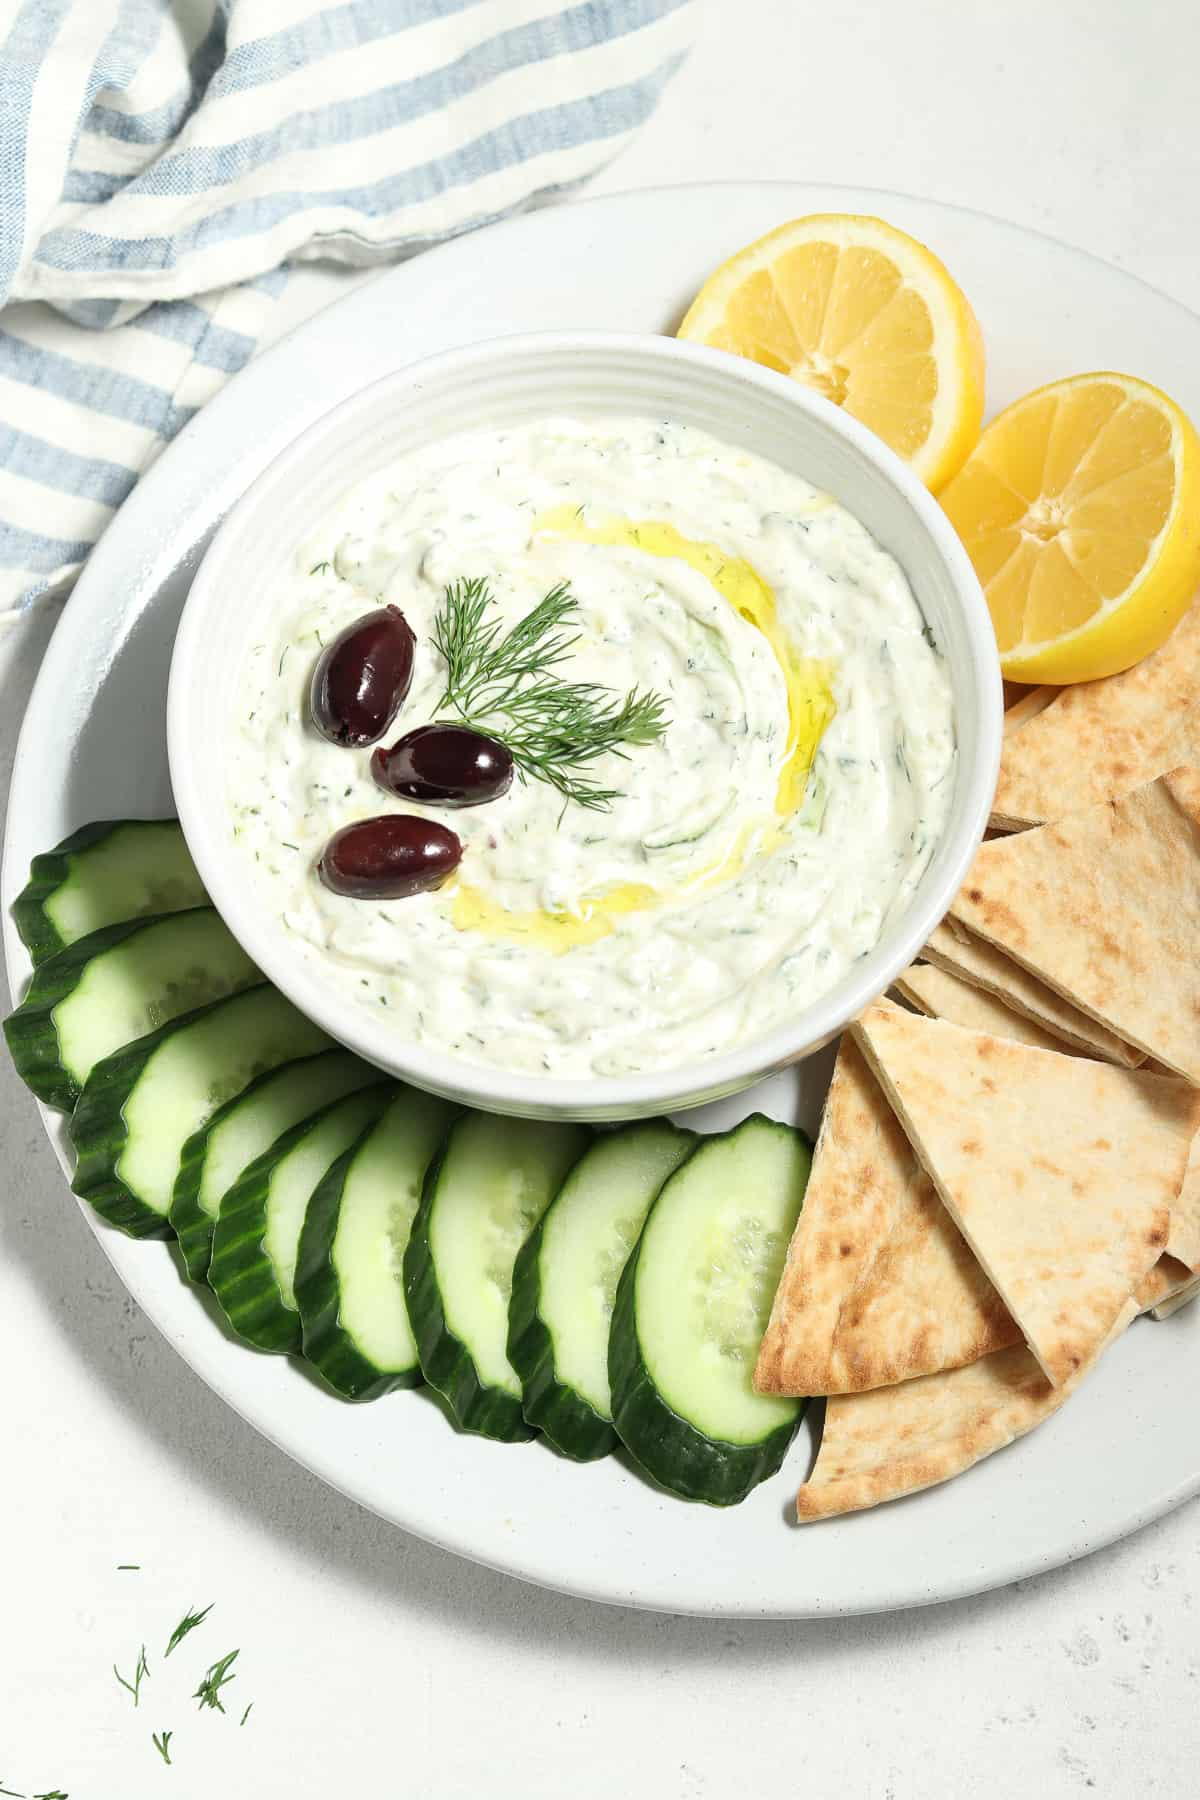 Overhead view of vegan tzatziki sauce in white bowl surrounded by pita slices and cucumber slices.